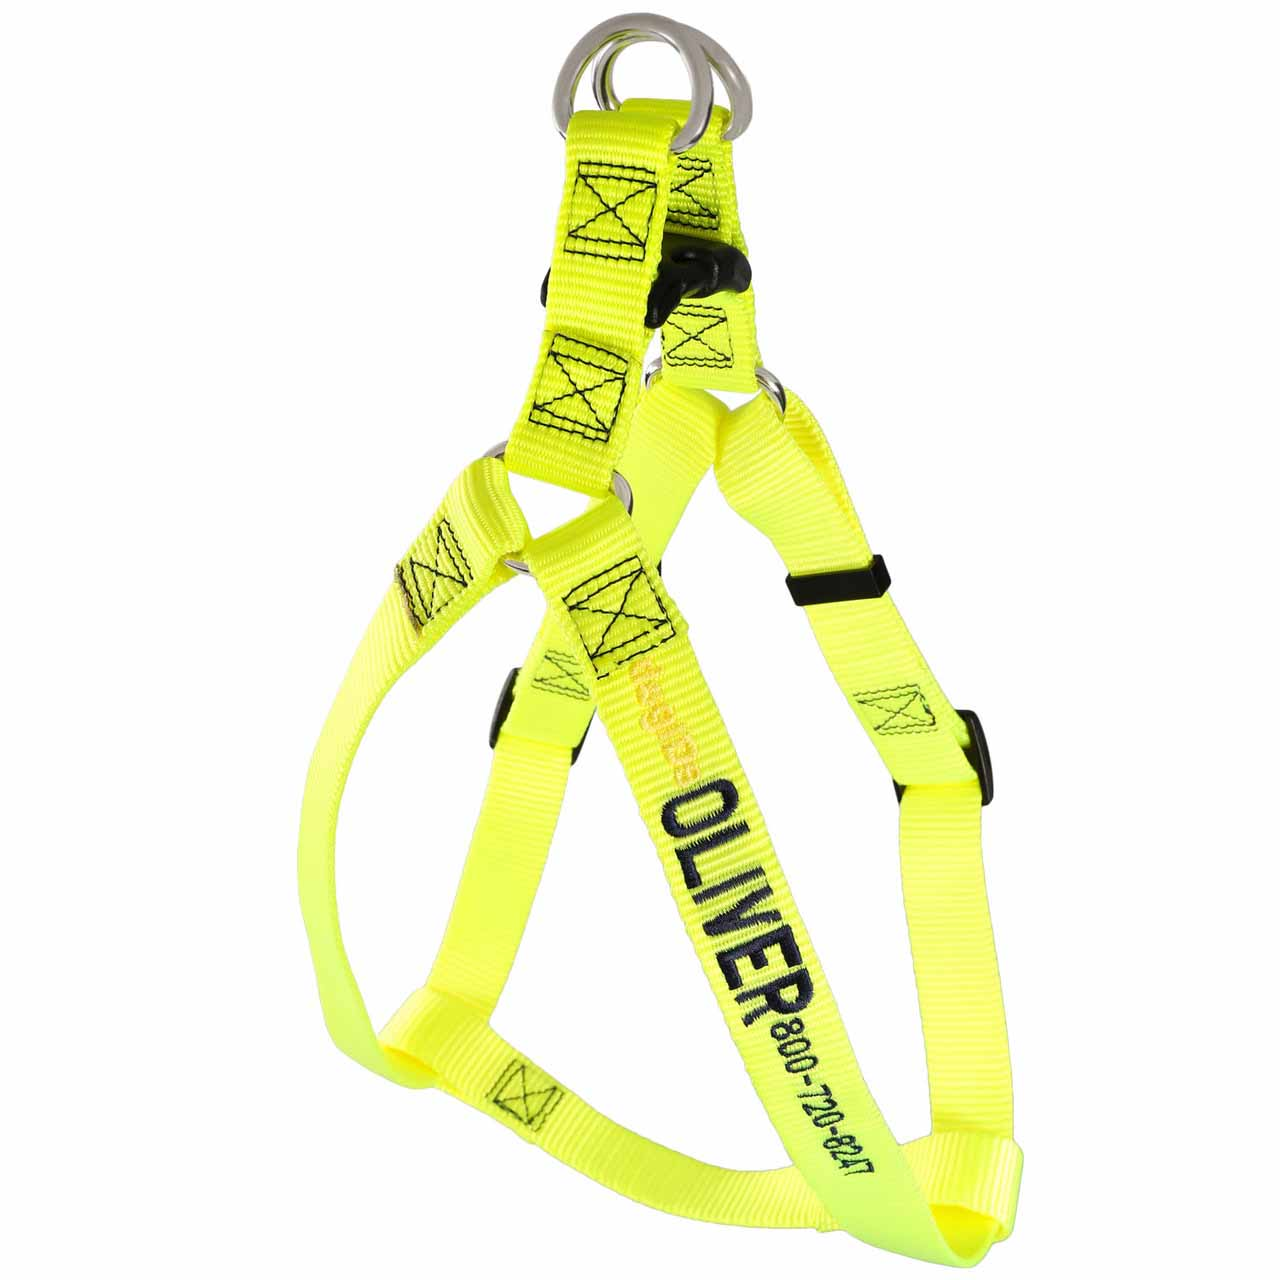 Embroidered Nylon Step-In Dog Harness Yellow